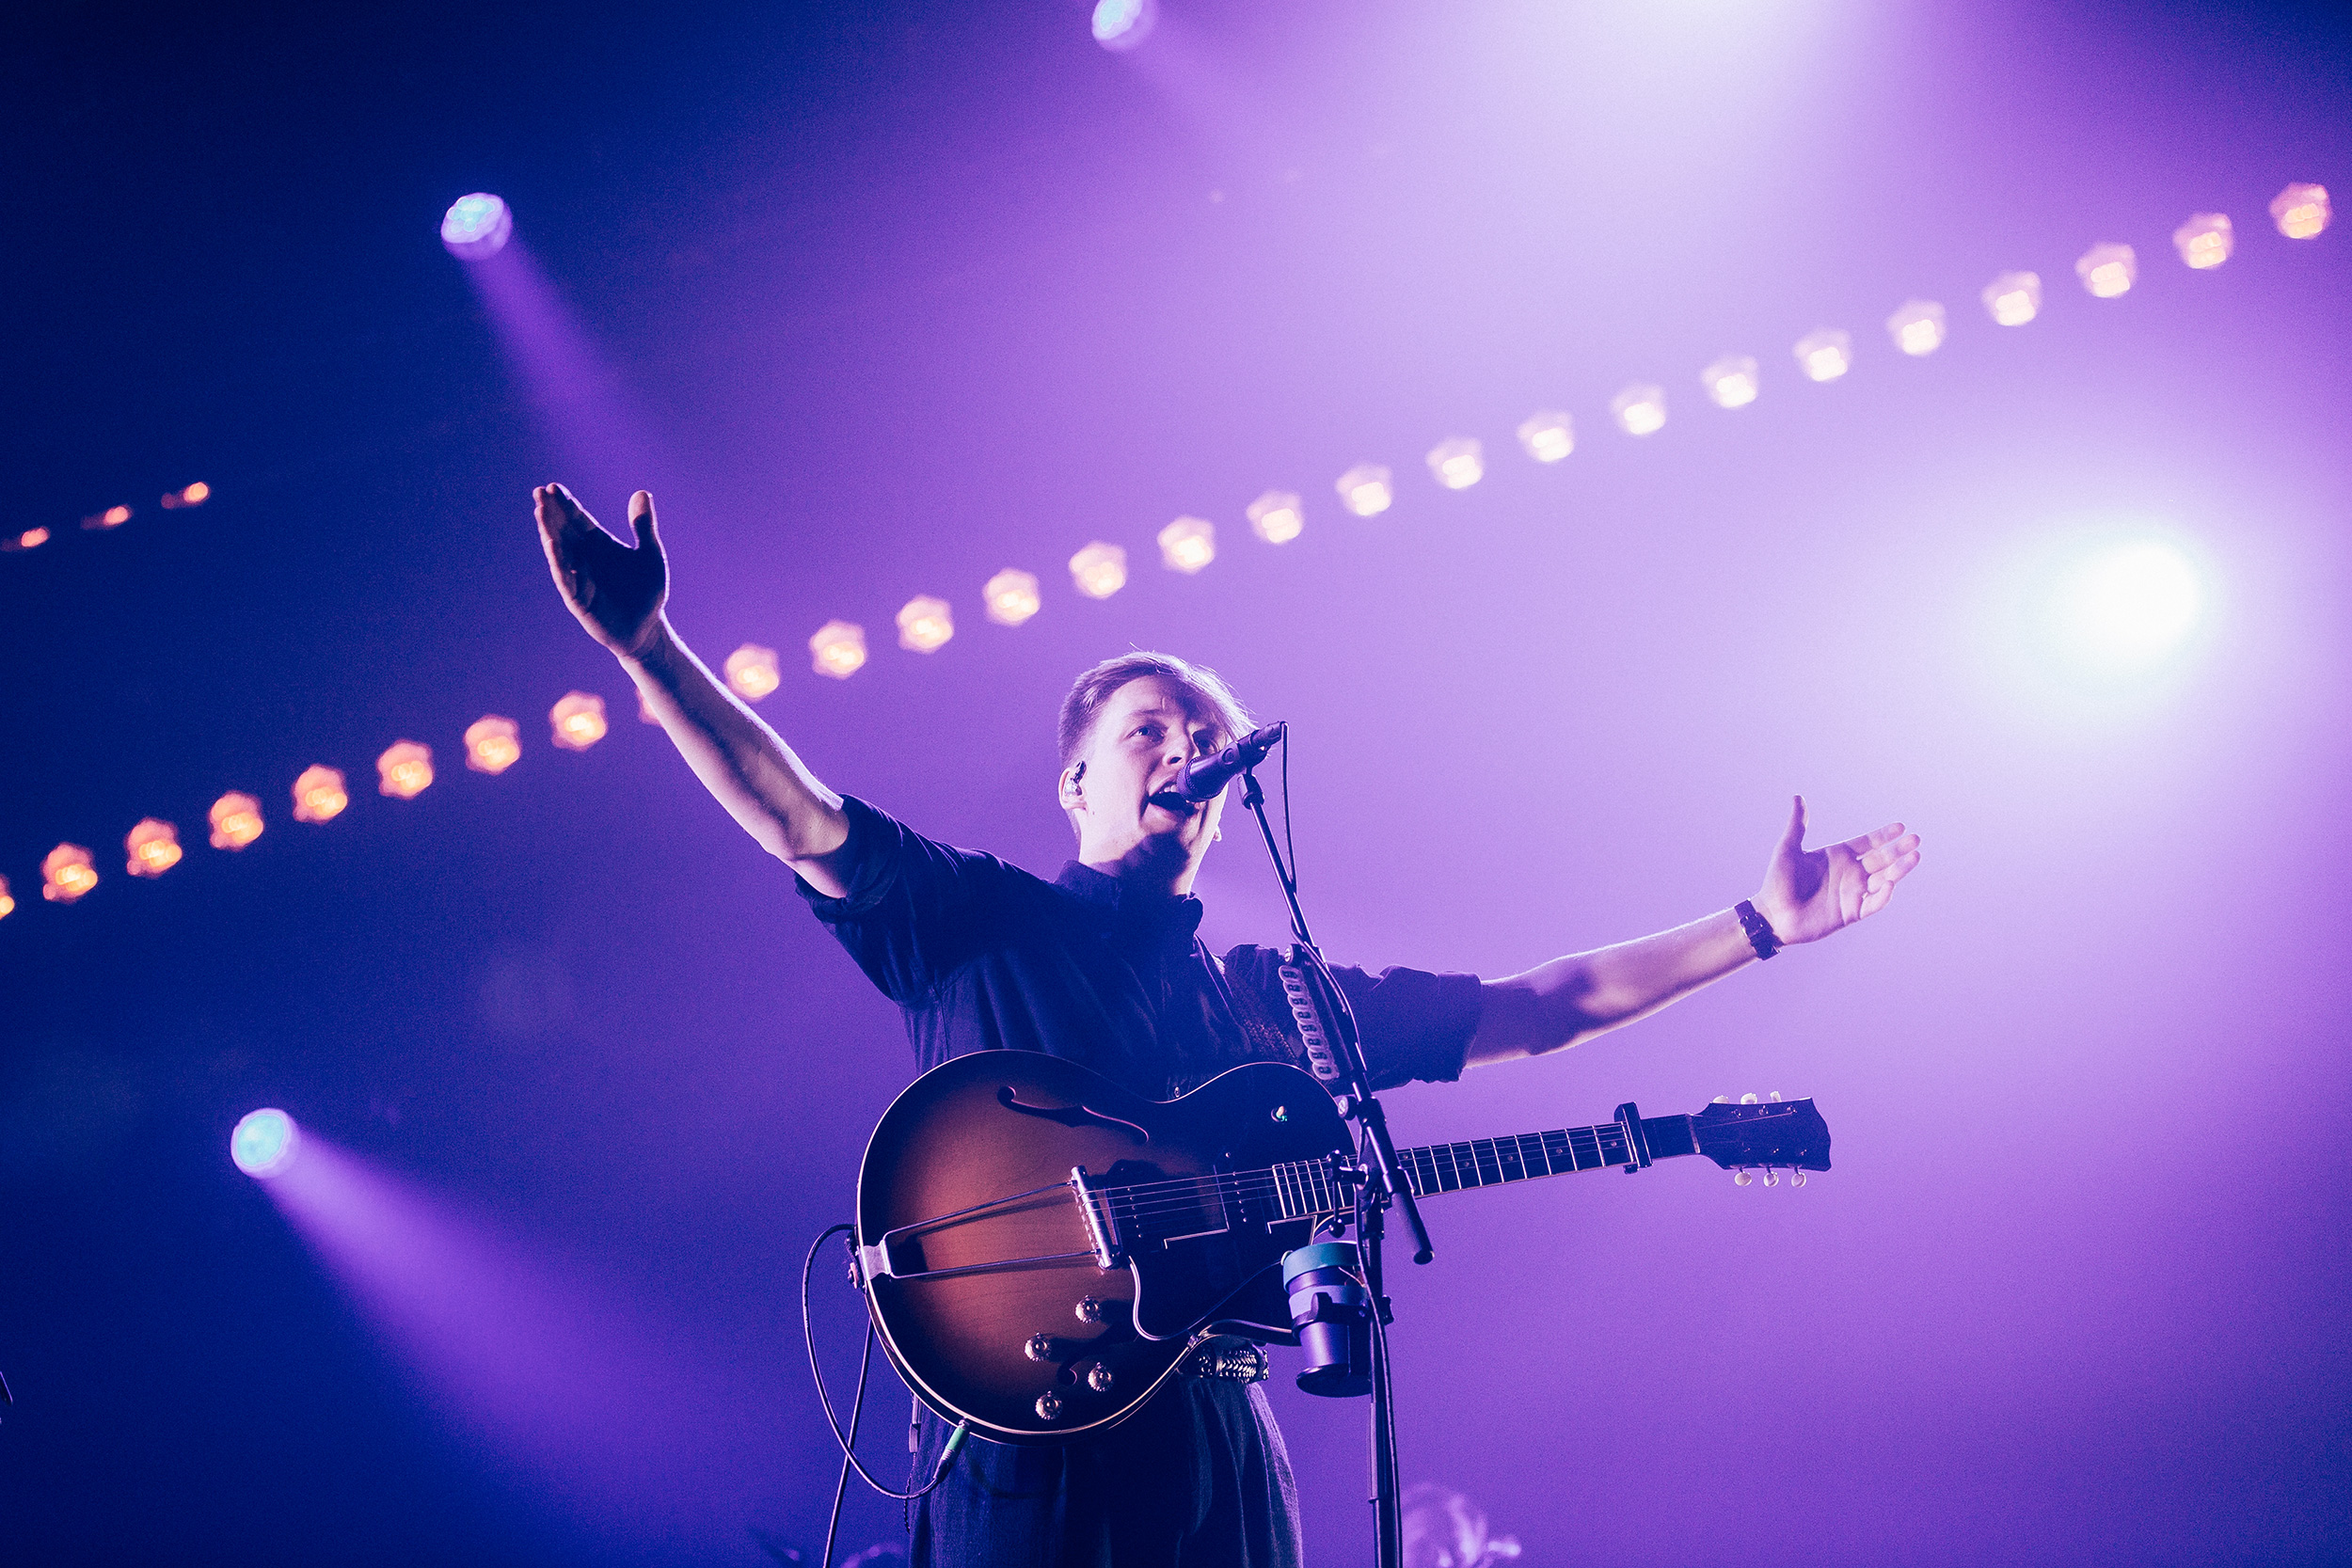 George_Ezra_151118_Communion-(24-of-44).jpg